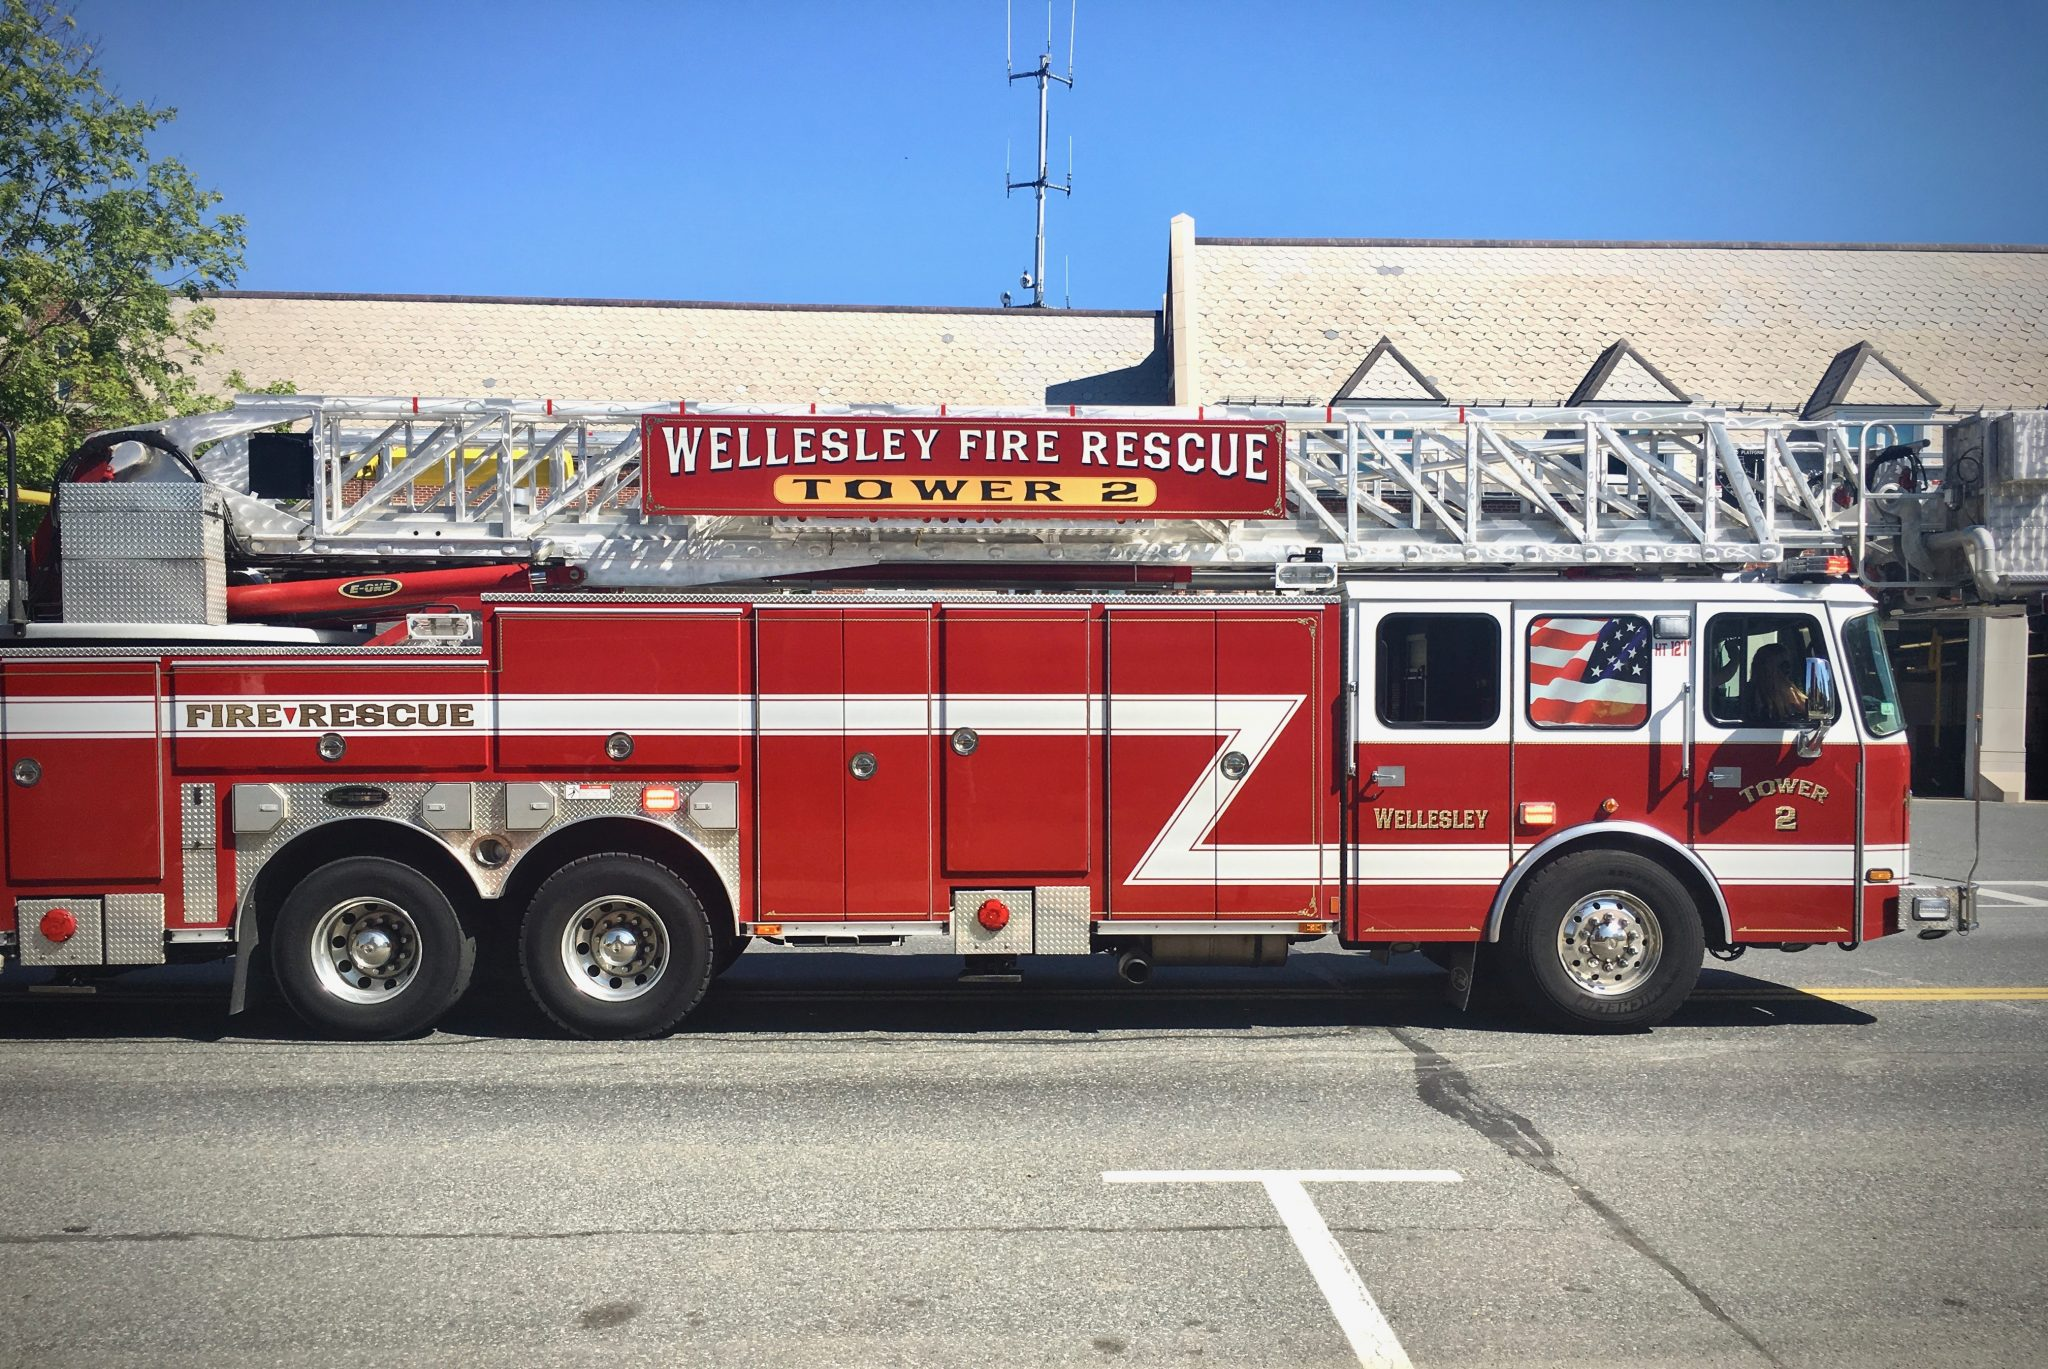 4th of July, Wellesley Fire